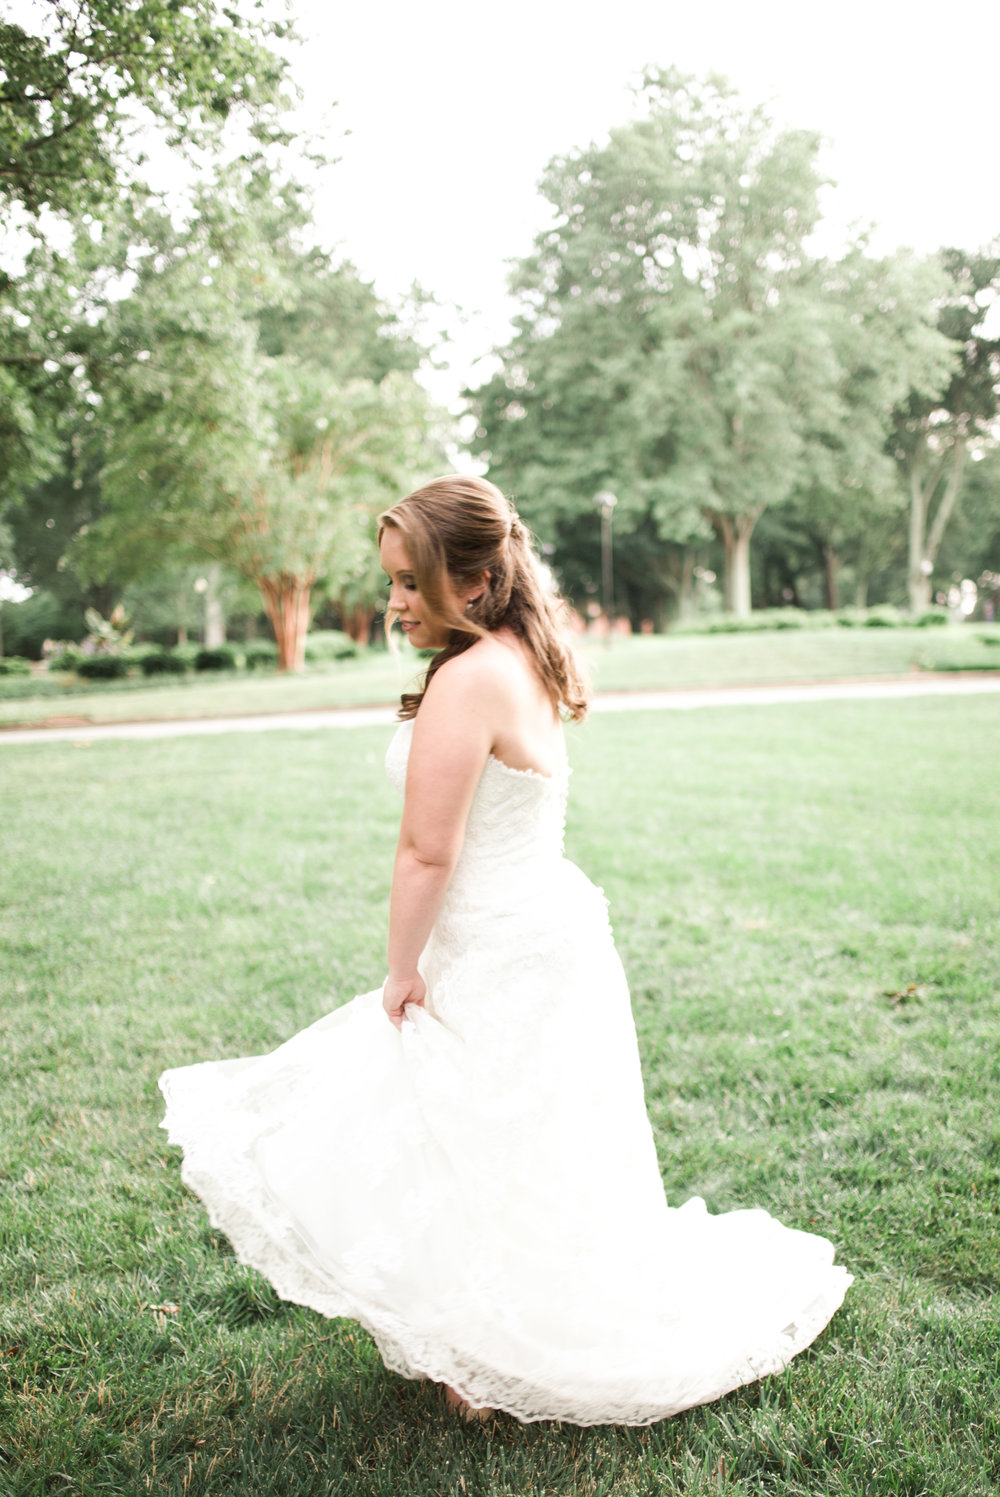 gabbie_bridal_poured_out_photography-20.jpg